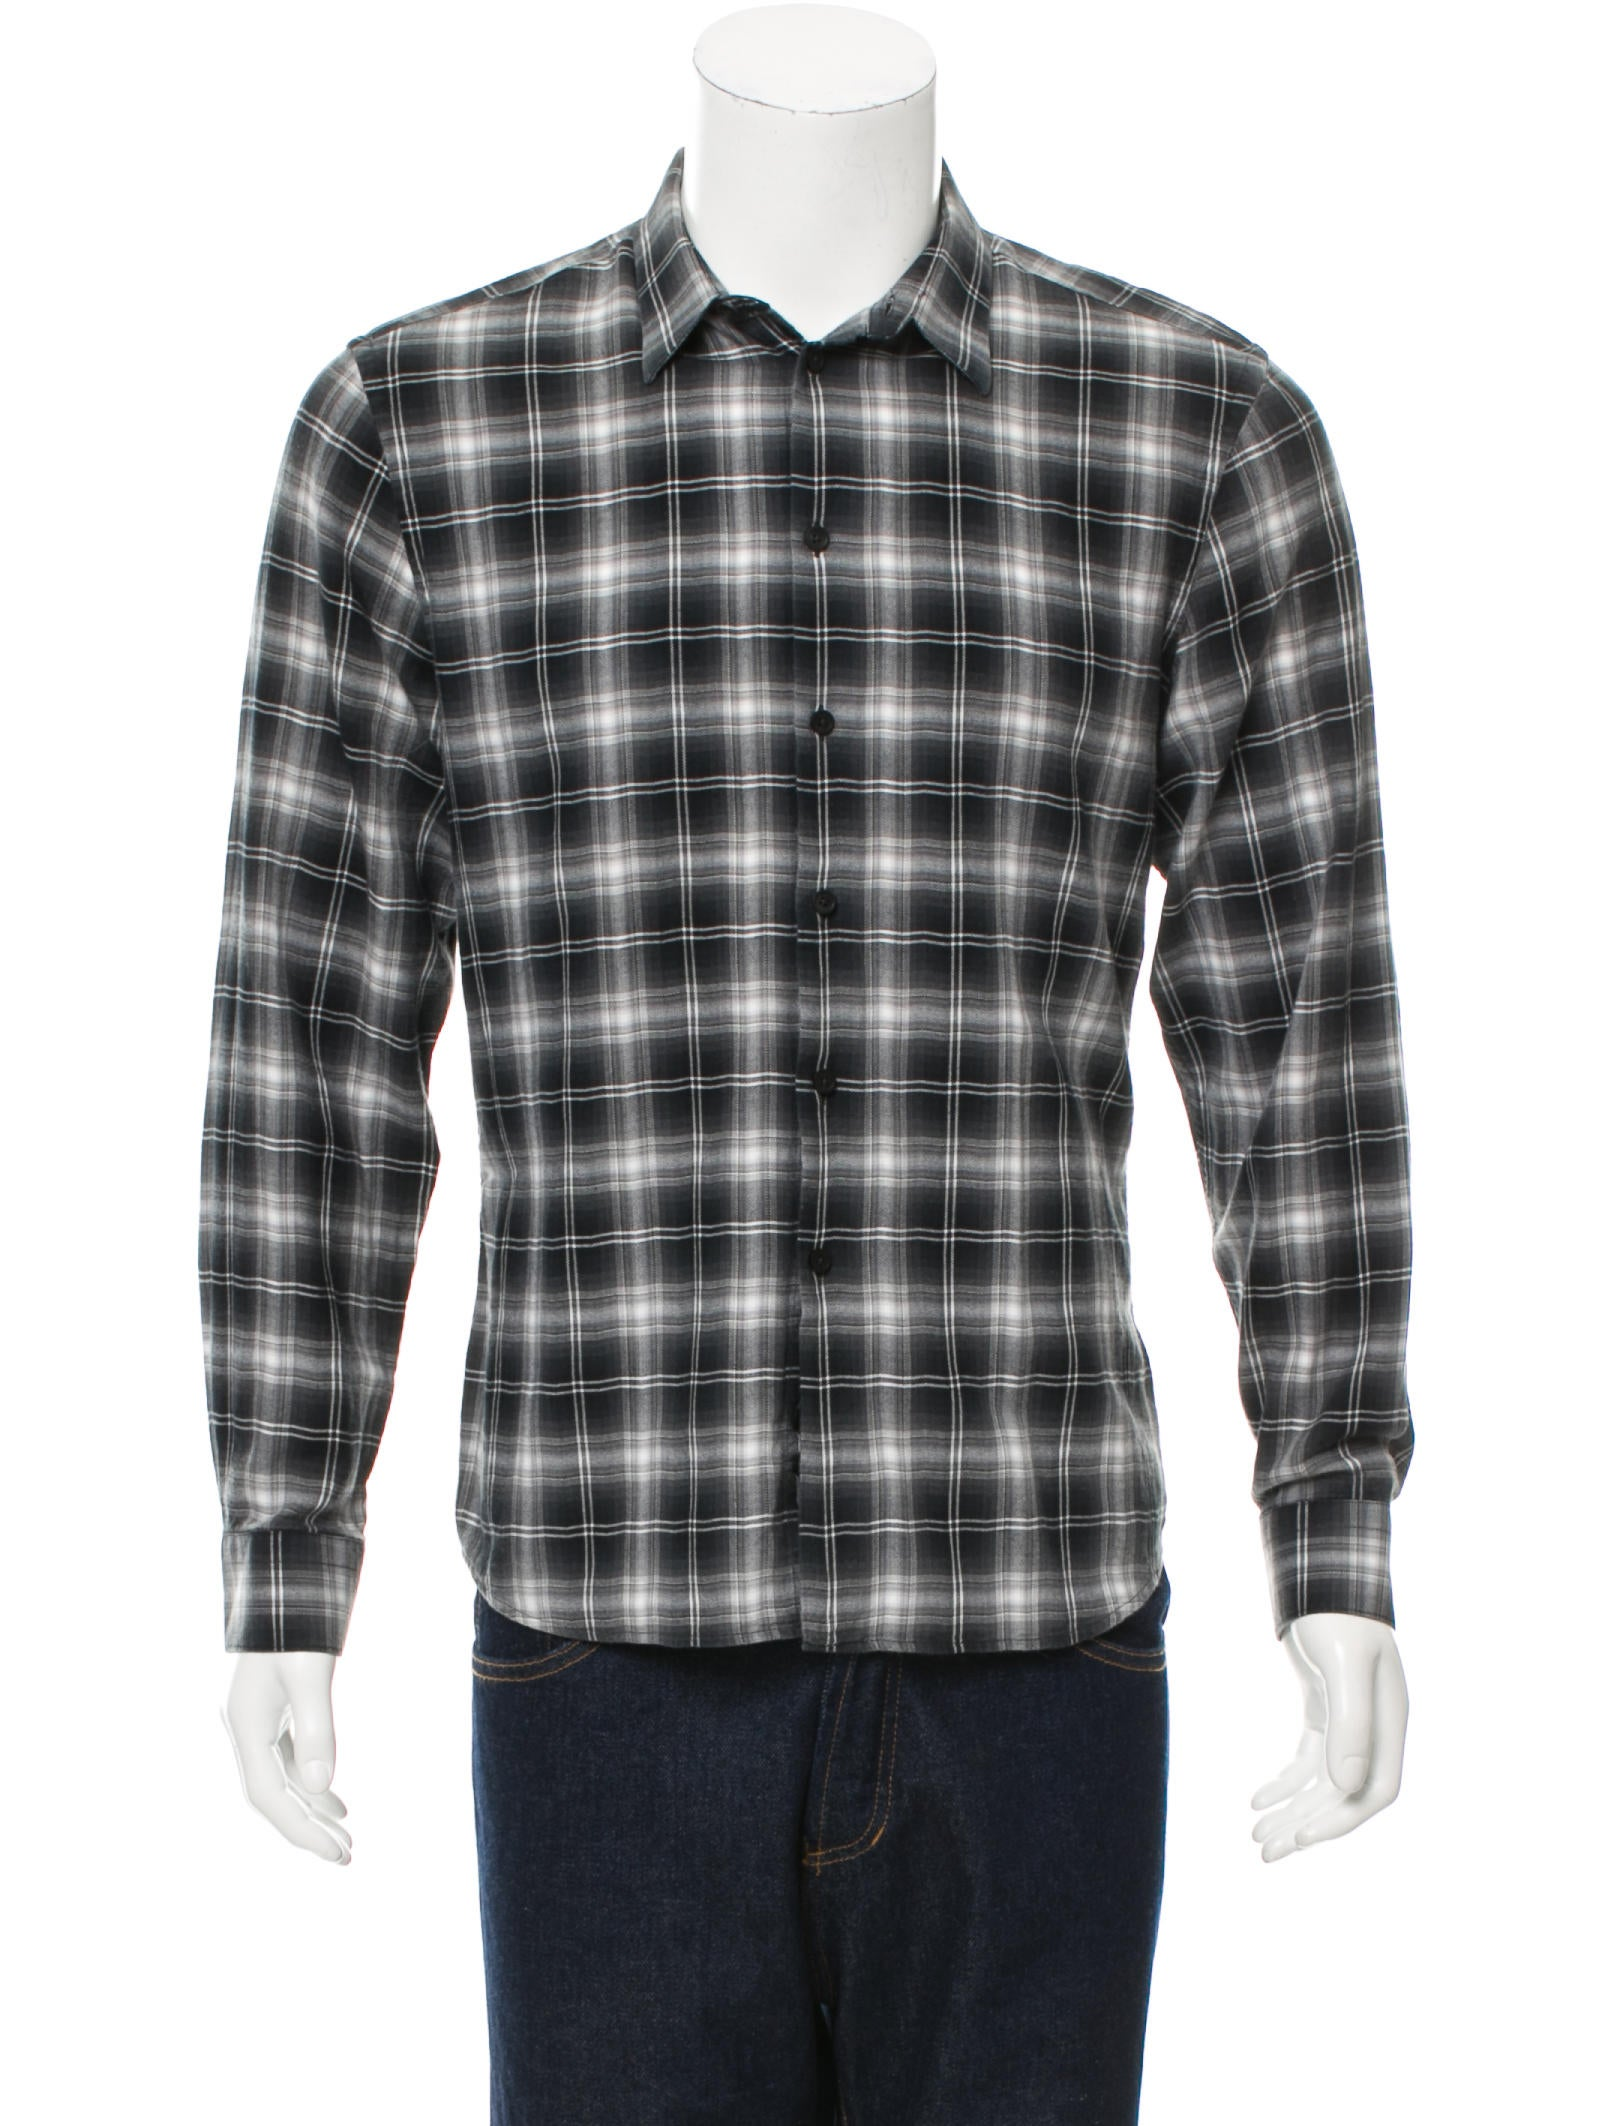 Givenchy flannel button up shirt clothing giv38803 for Button up flannel shirts